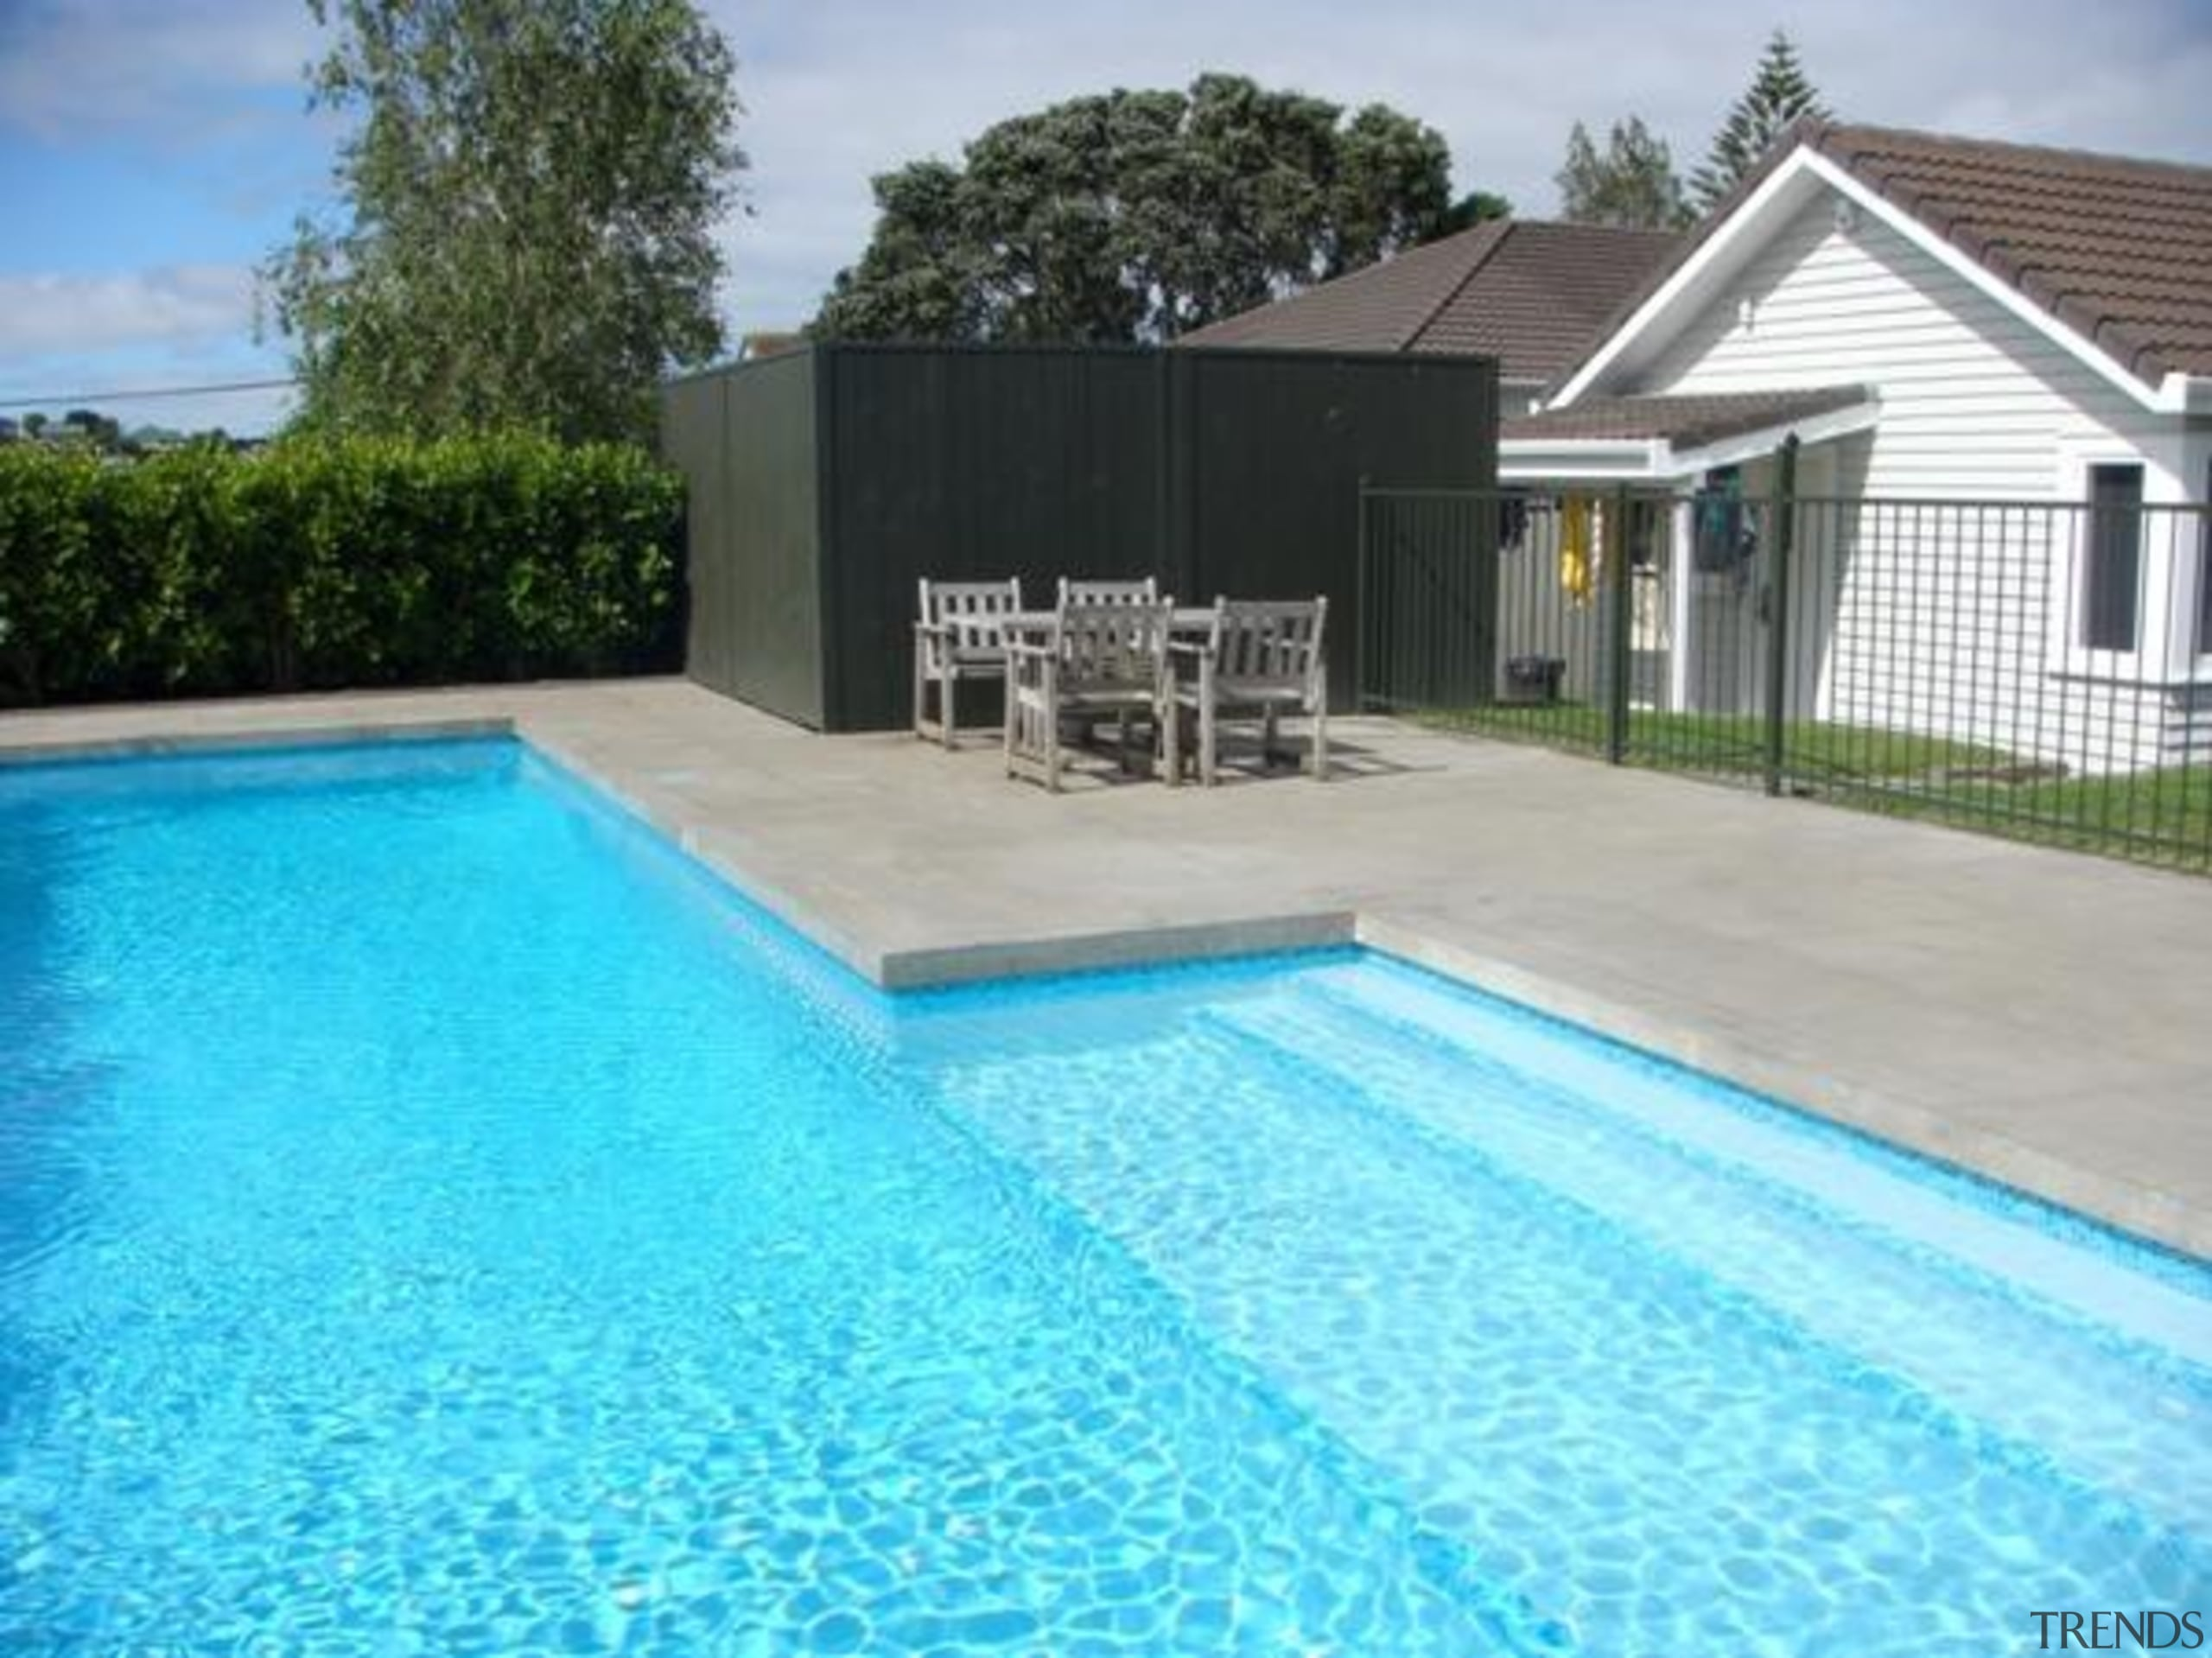 pol0083web.jpg - pol0083web.jpg - backyard | estate | backyard, estate, home, house, leisure, outdoor structure, property, real estate, residential area, swimming pool, villa, water, teal, gray